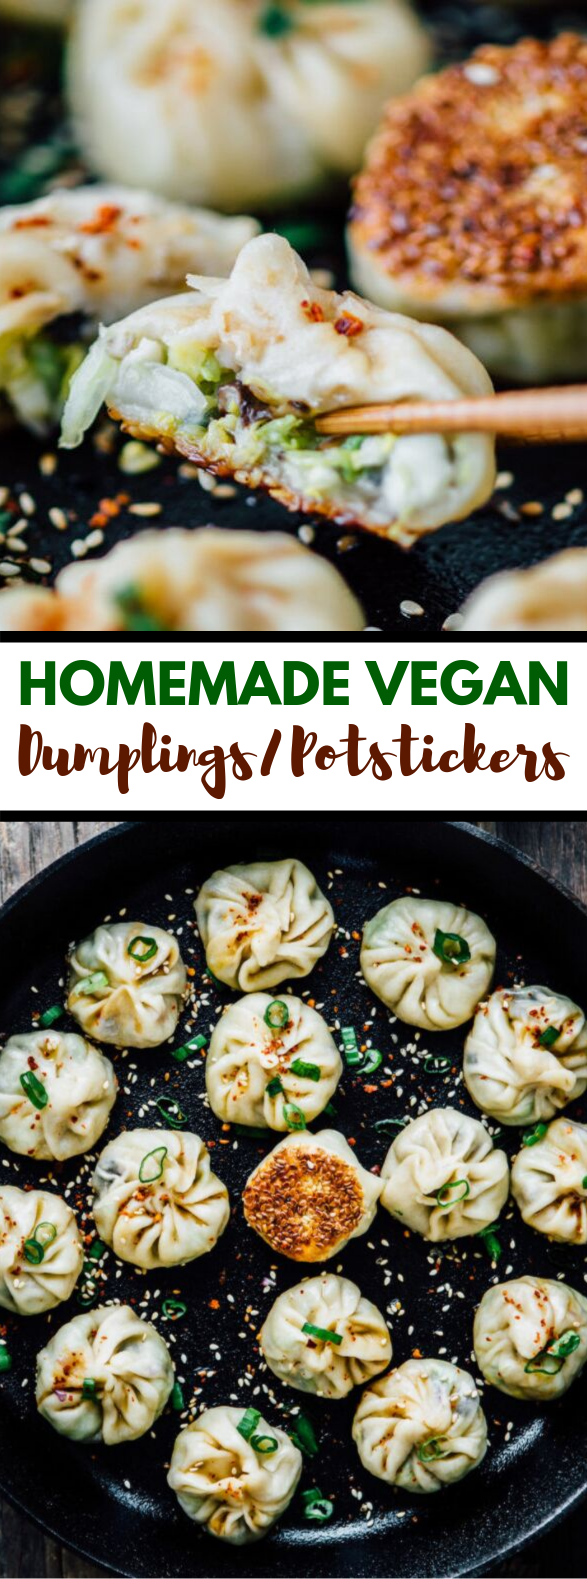 Homemade Vegan Dumplings/Potstickers #veggies #veganrecipe